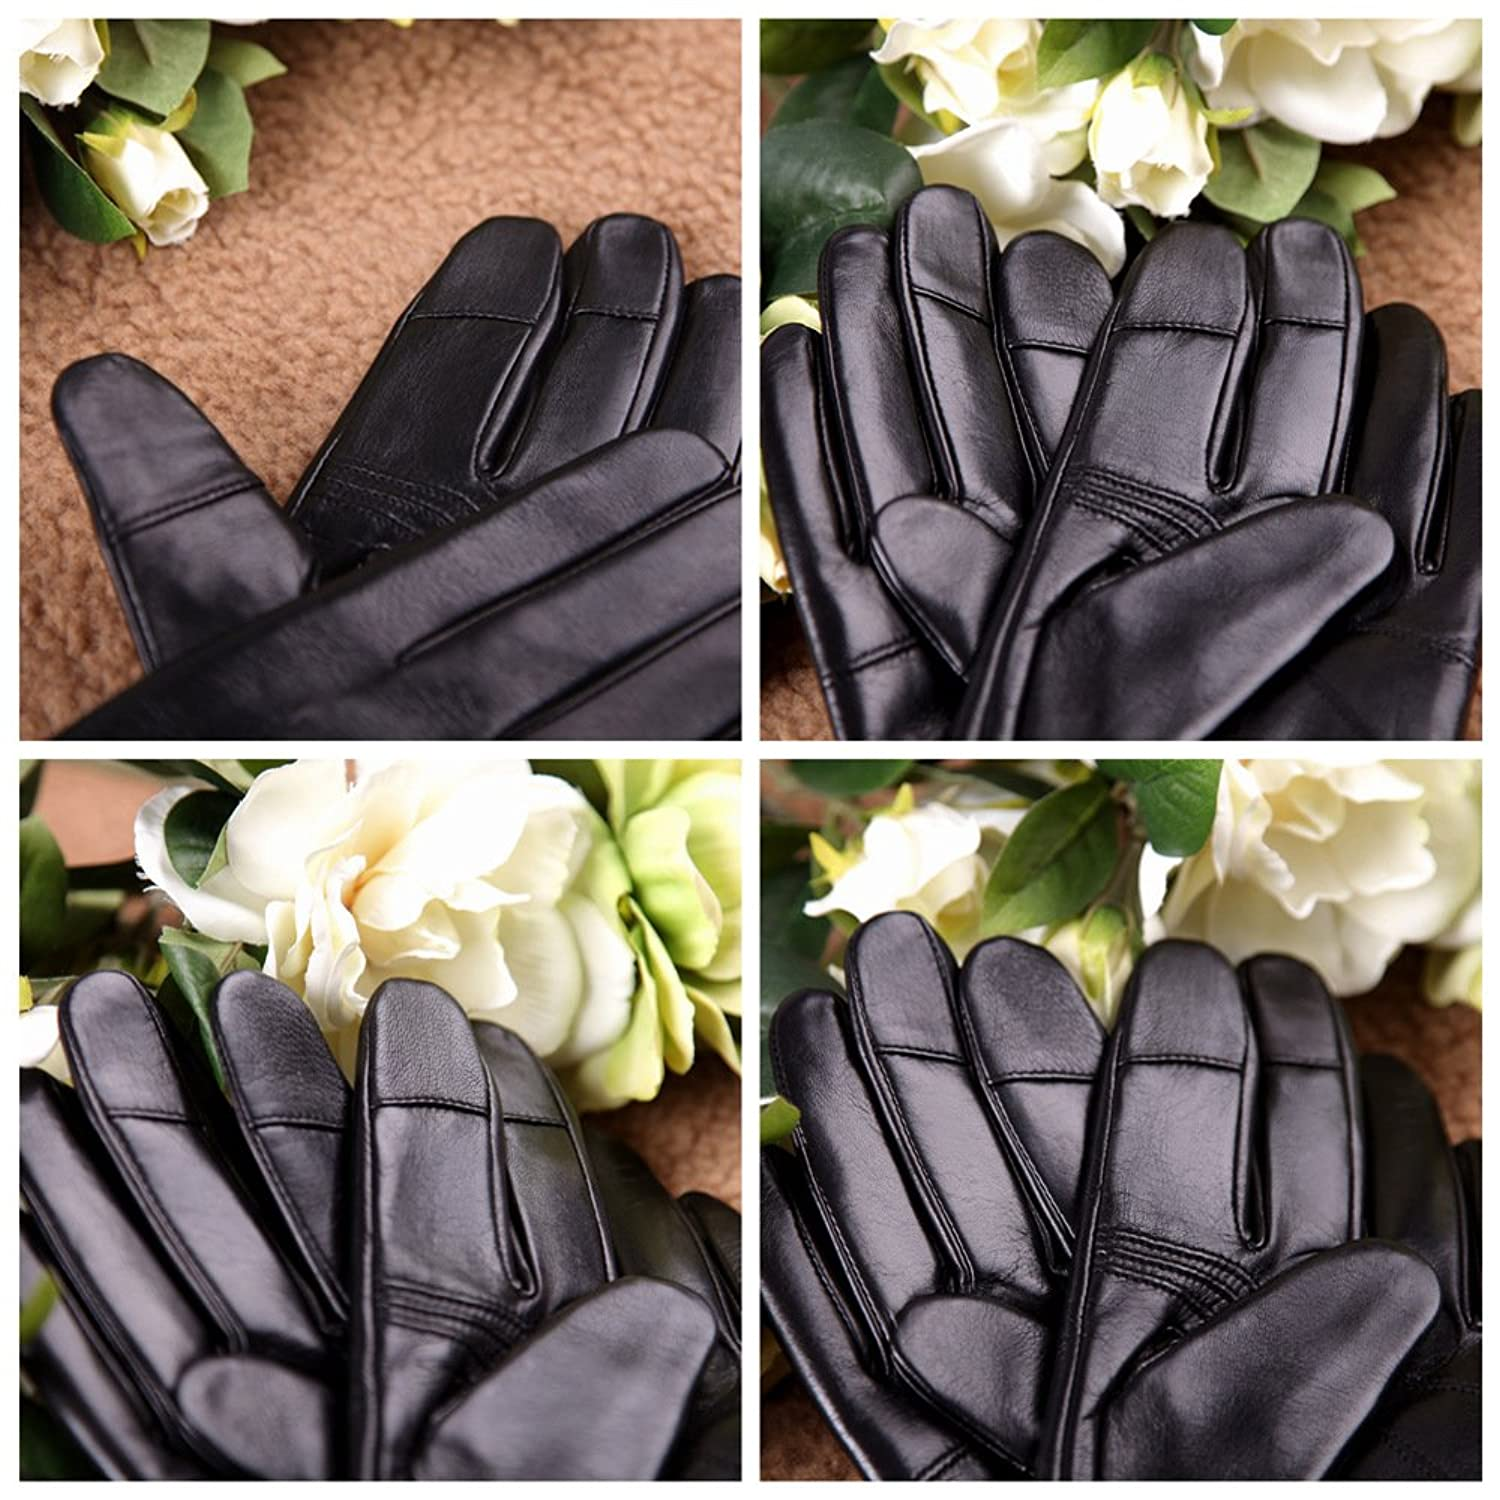 Driving gloves edmonton - Luxury Men S Touchscreen Texting Winter Italian Nappa Leather Gloves Plush Cashmere Lining Black 2014 Winter New Cashmere Lining 8 5 True To Us